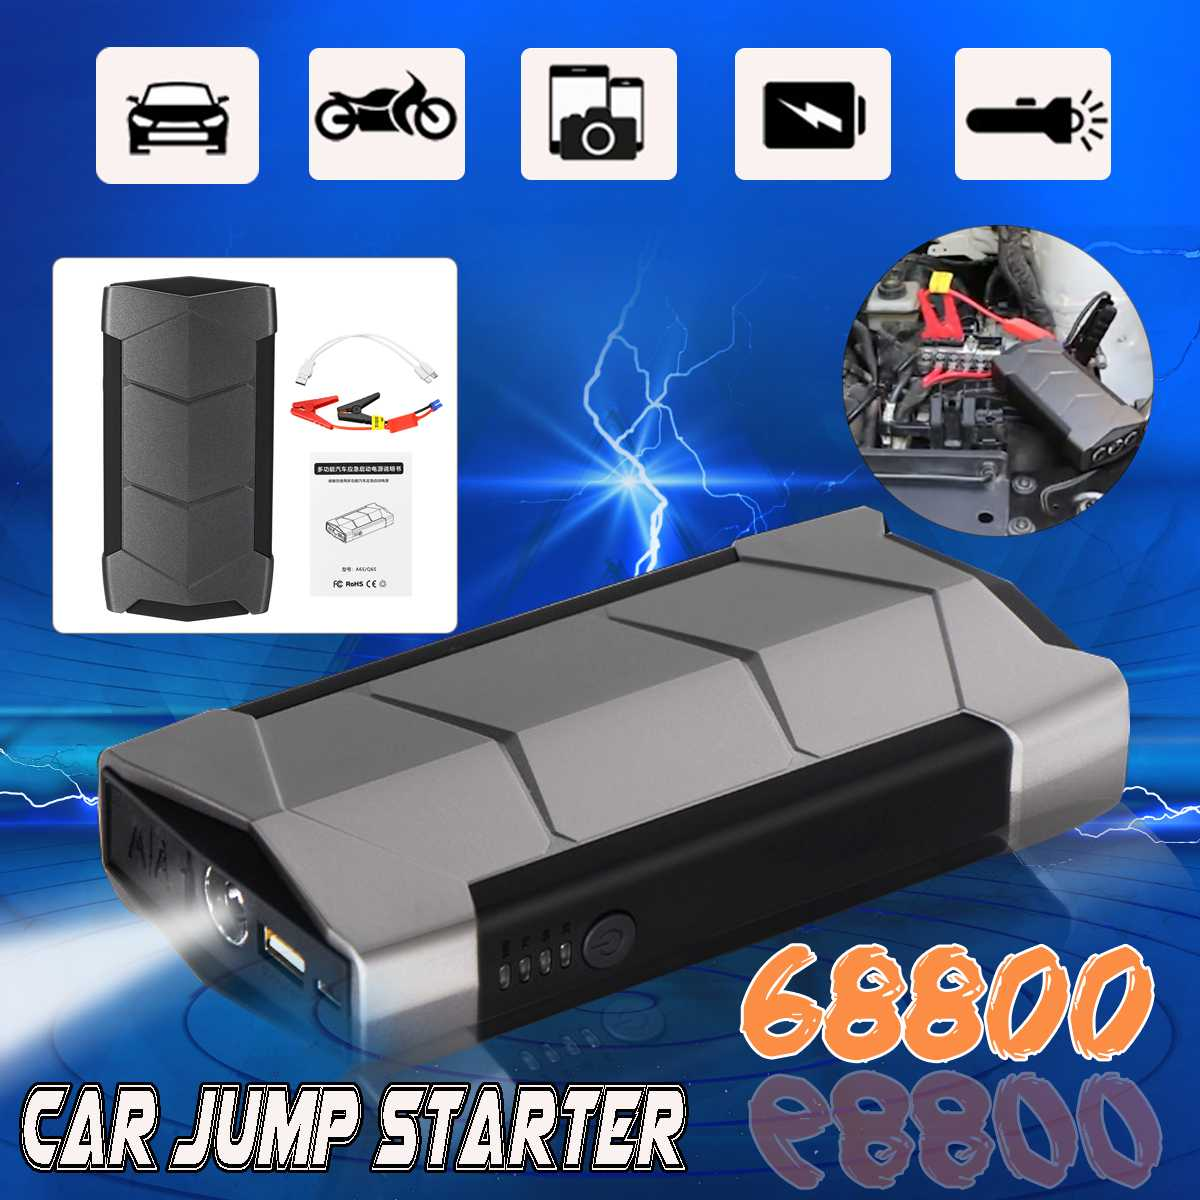 Mini Portable 12V 68800mAh Car Jump Starter Battery USB Charger Emergency Power Bank SOS LED Torch Light For Starting Device